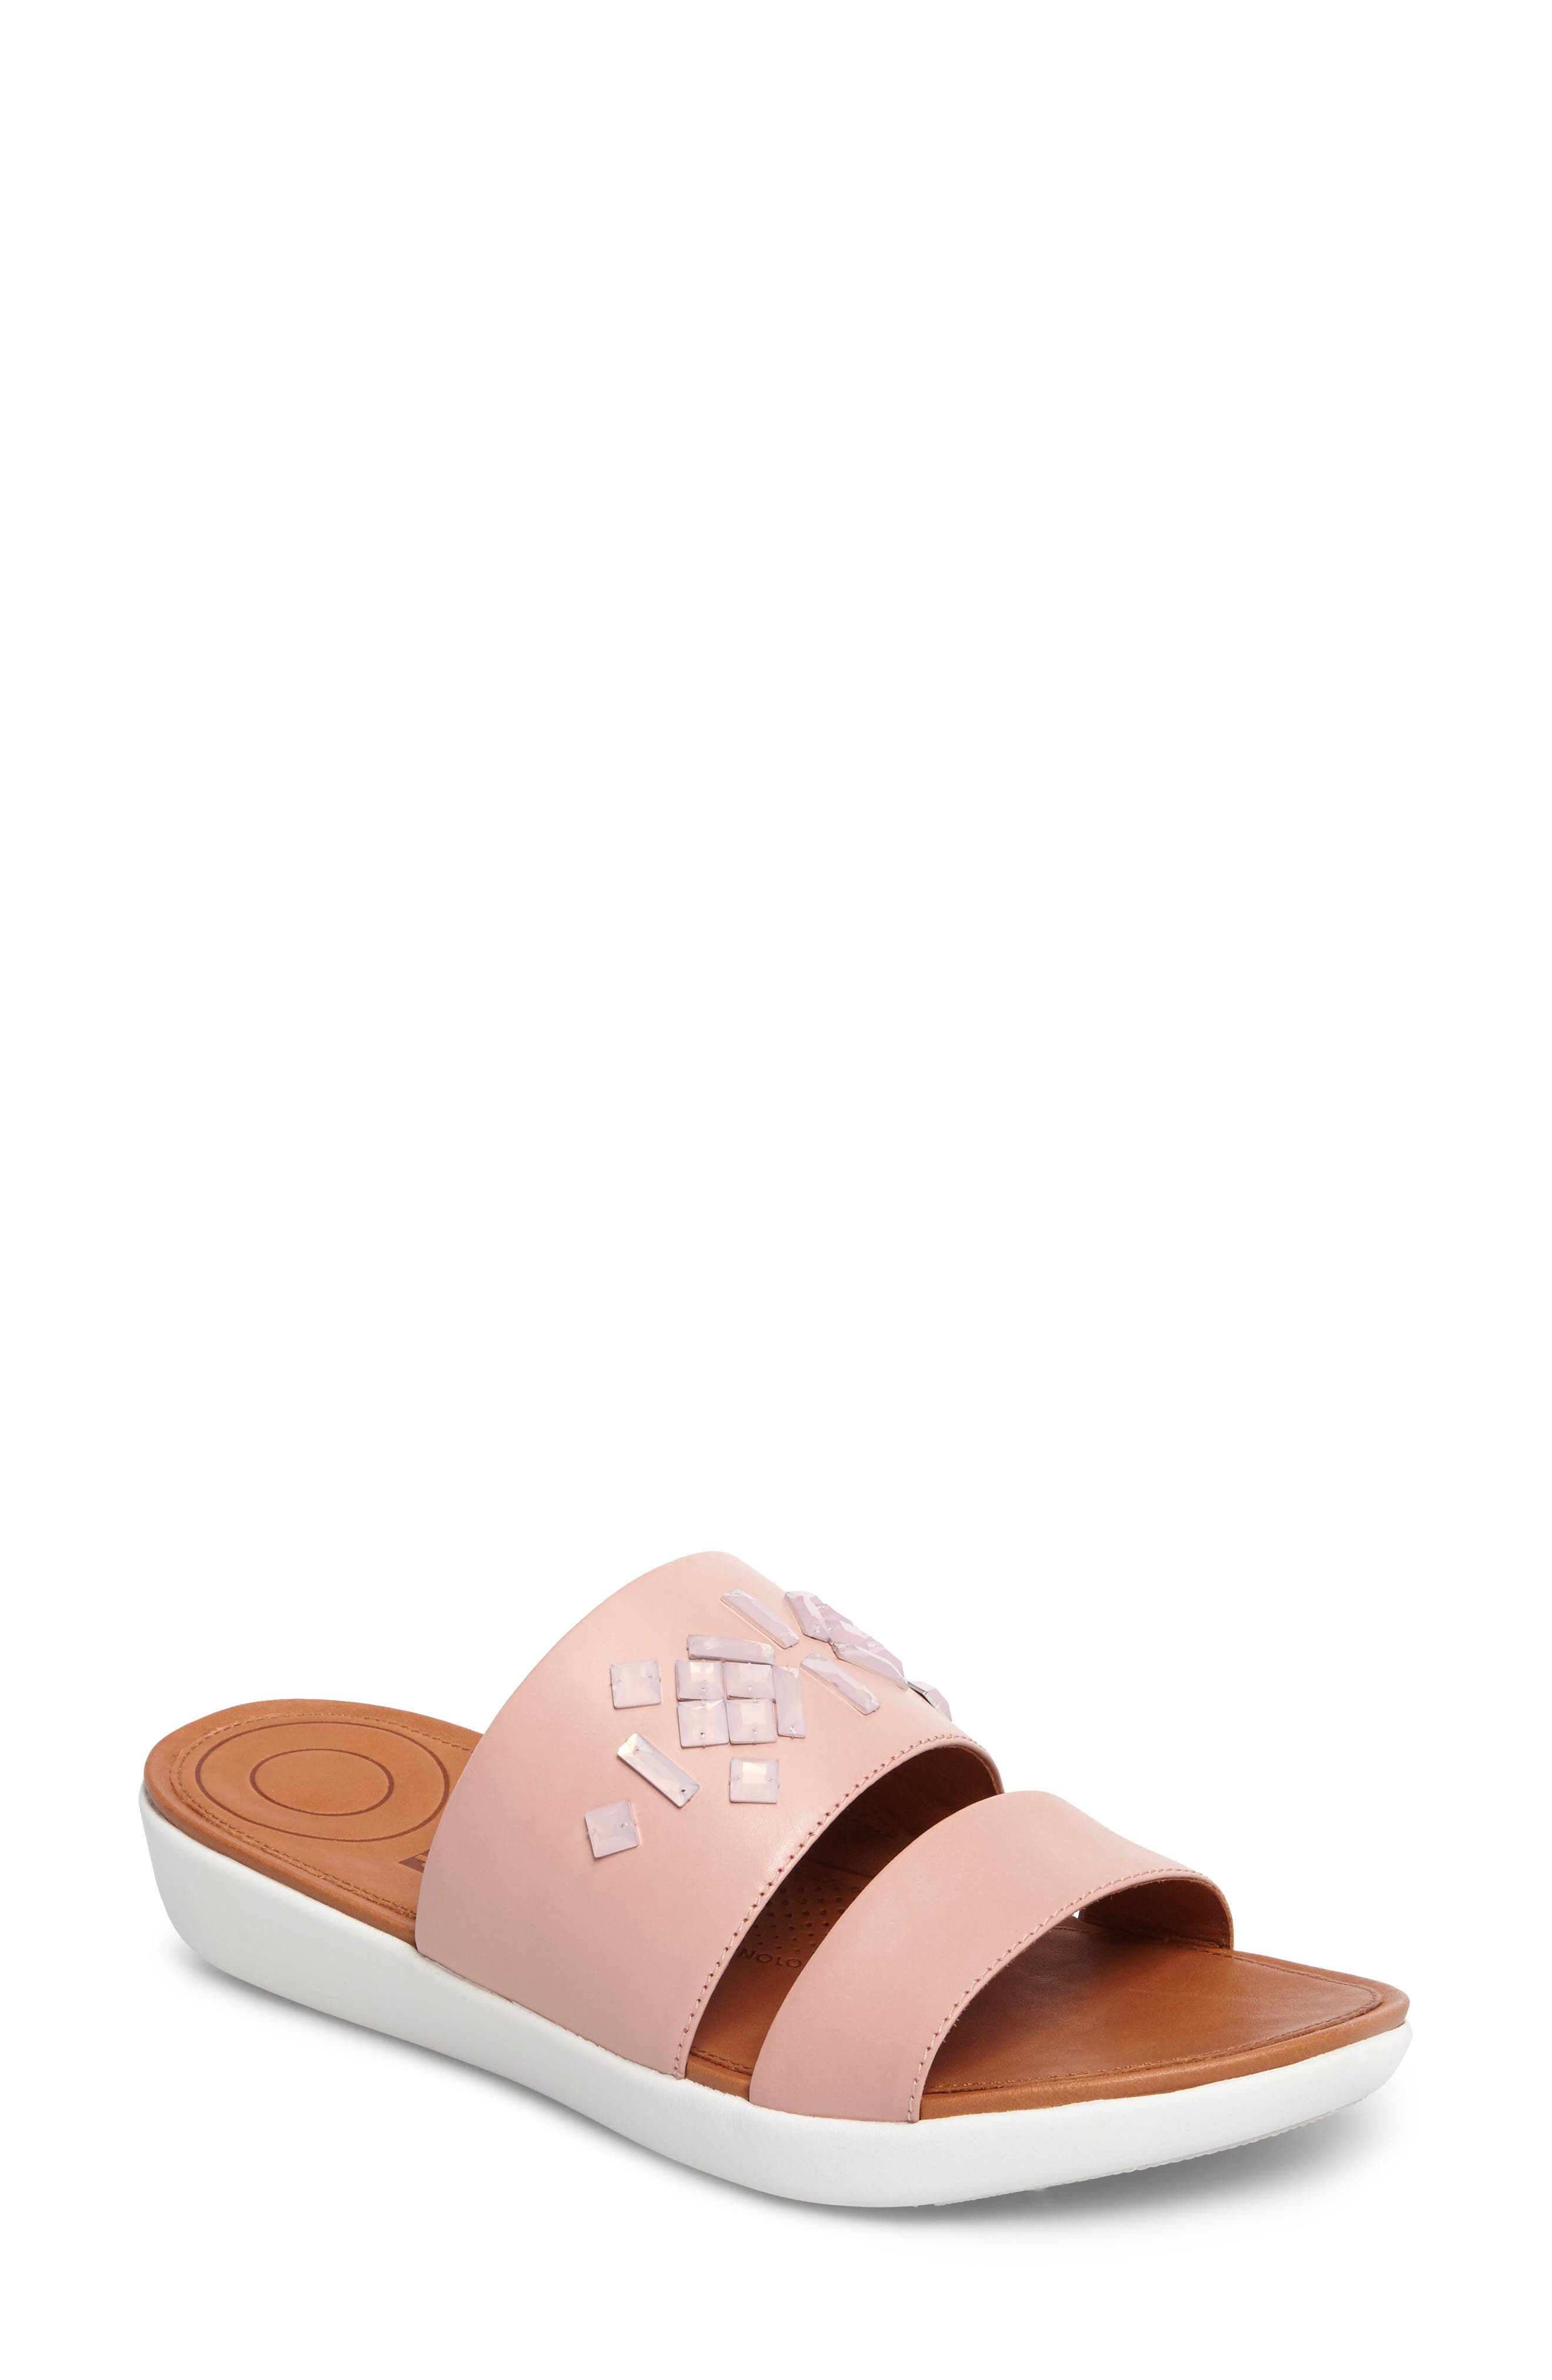 FITFLOP,                             Delta Slide Sandal,                             Main thumbnail 1, color,                             DUSTY PINK LEATHER